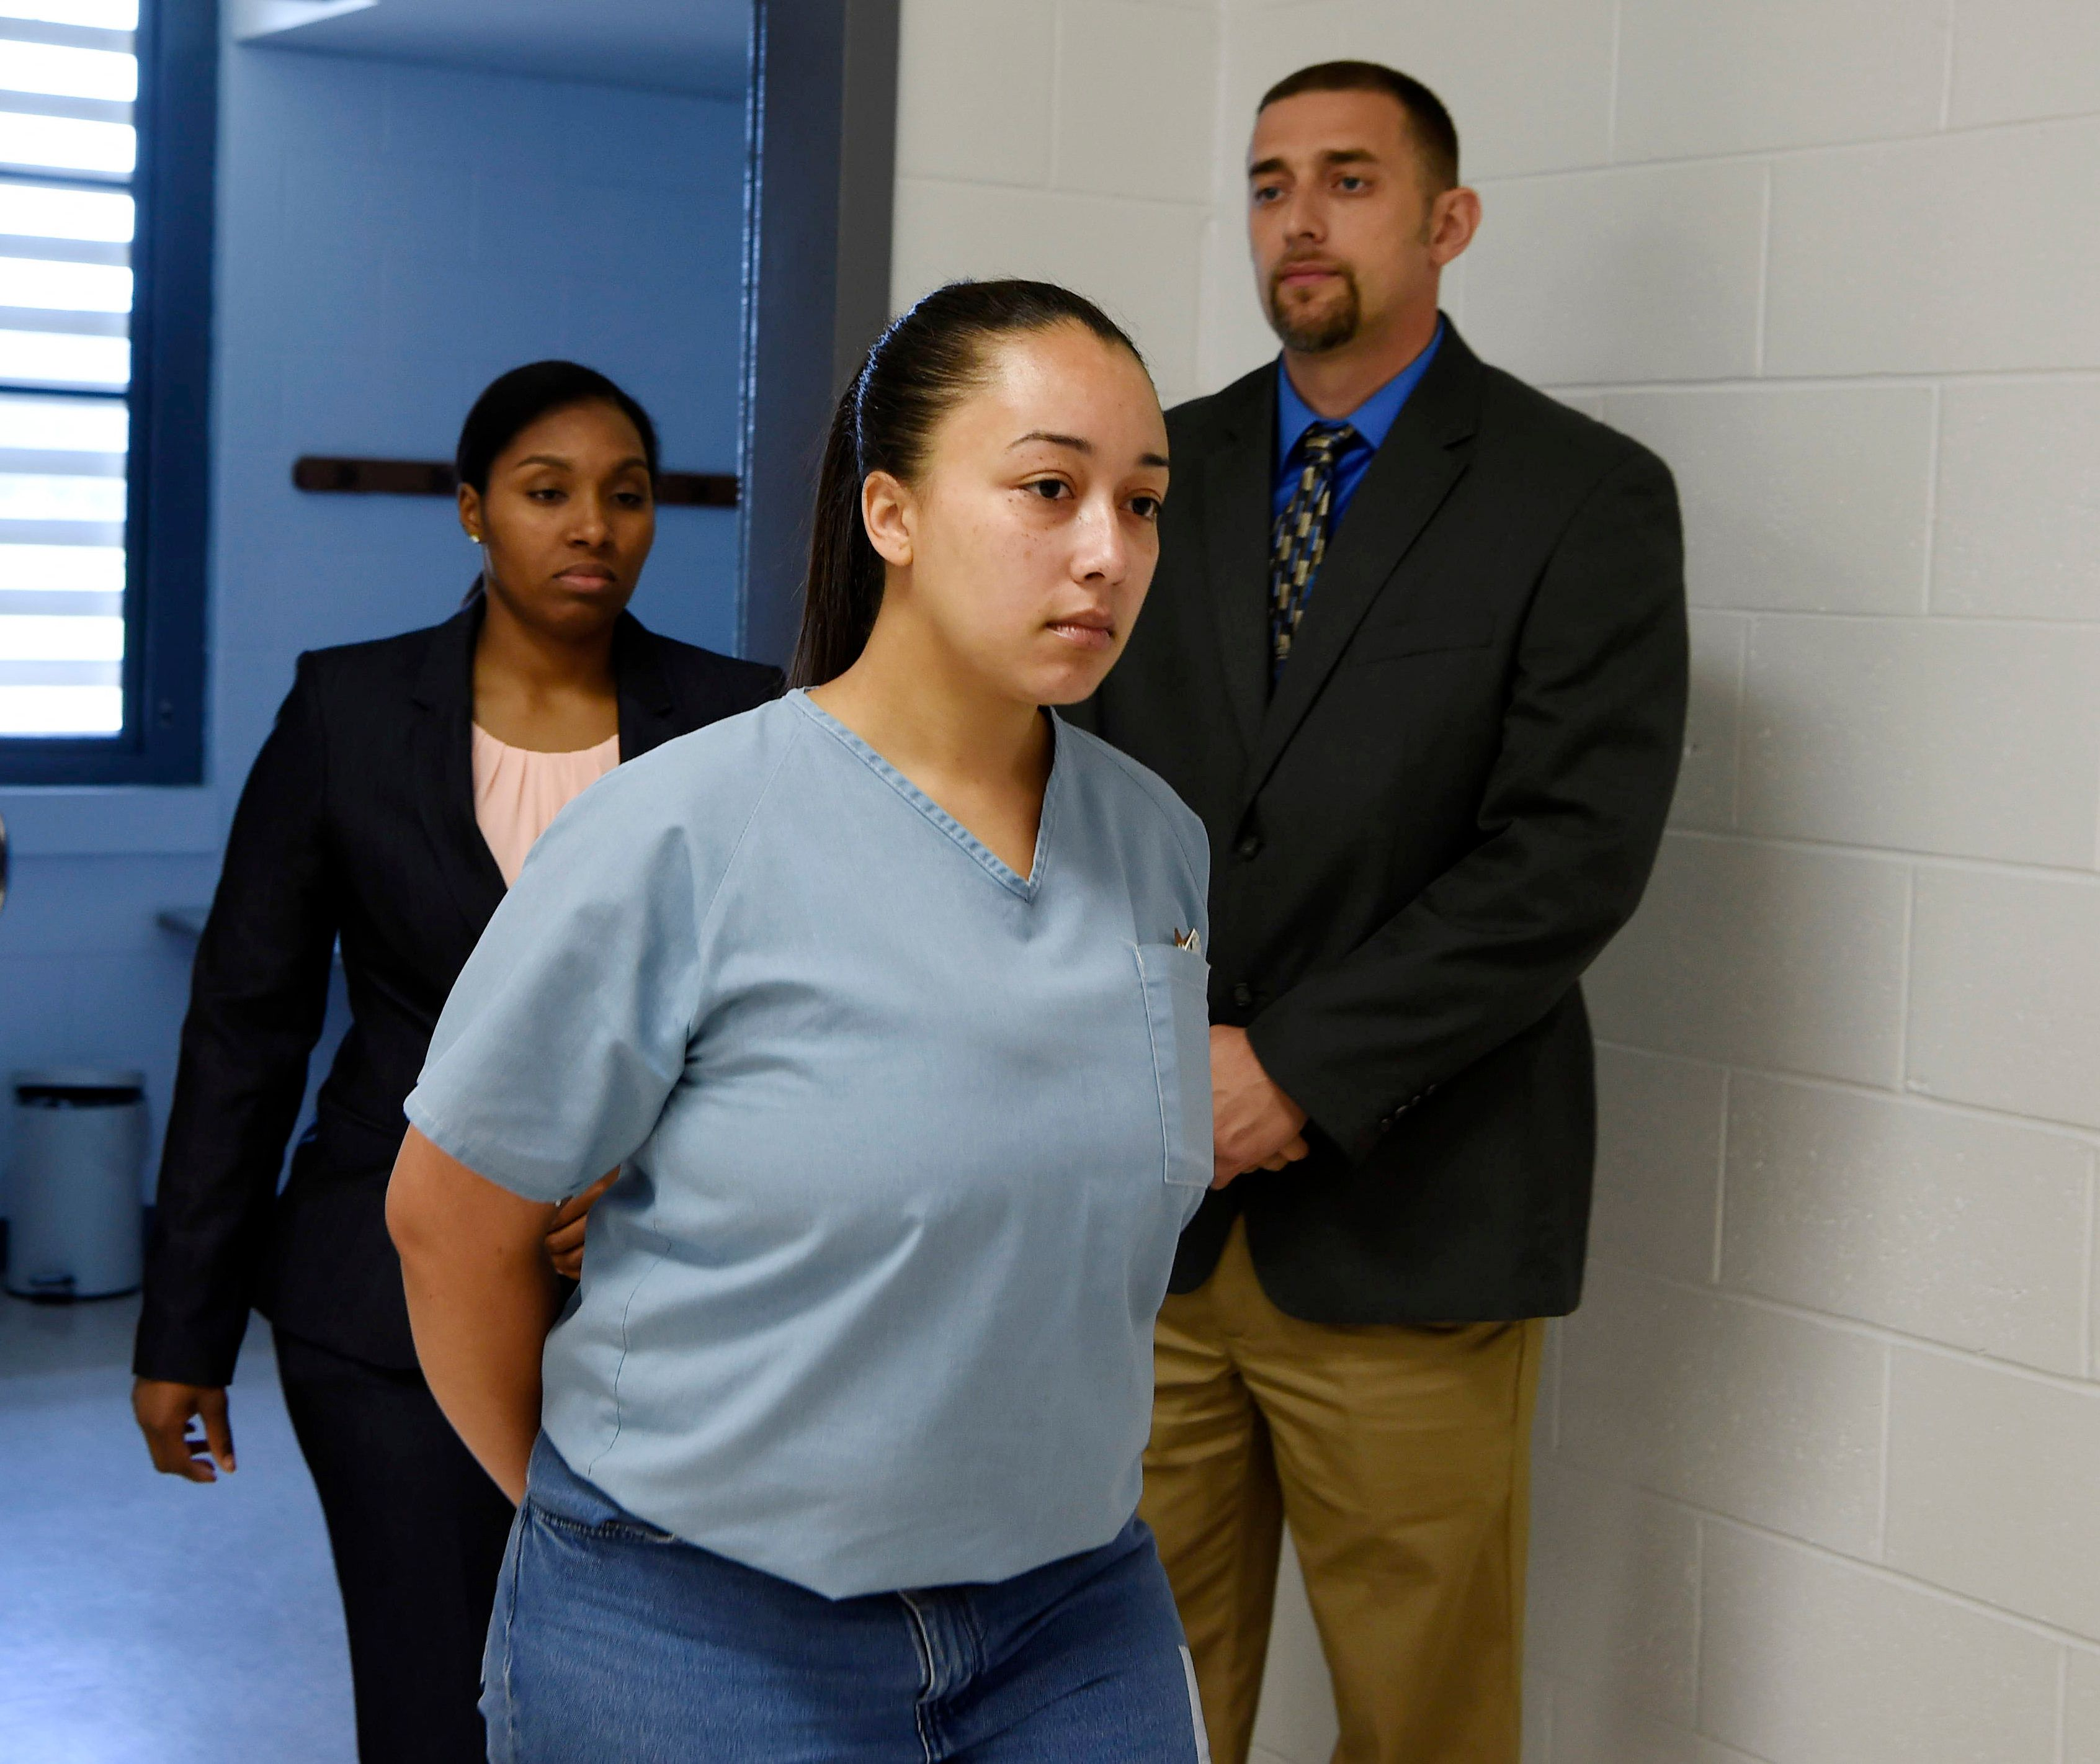 Cyntoia Brown, a woman serving a life sentence for killing a man when she was a 16-year-old prostitute, enters her clemency hearing Wednesday, May 23, 2018, at Tennessee Prison for Women in Nashville, Tenn. (Lacy Atkins /The Tennessean via AP, Pool)